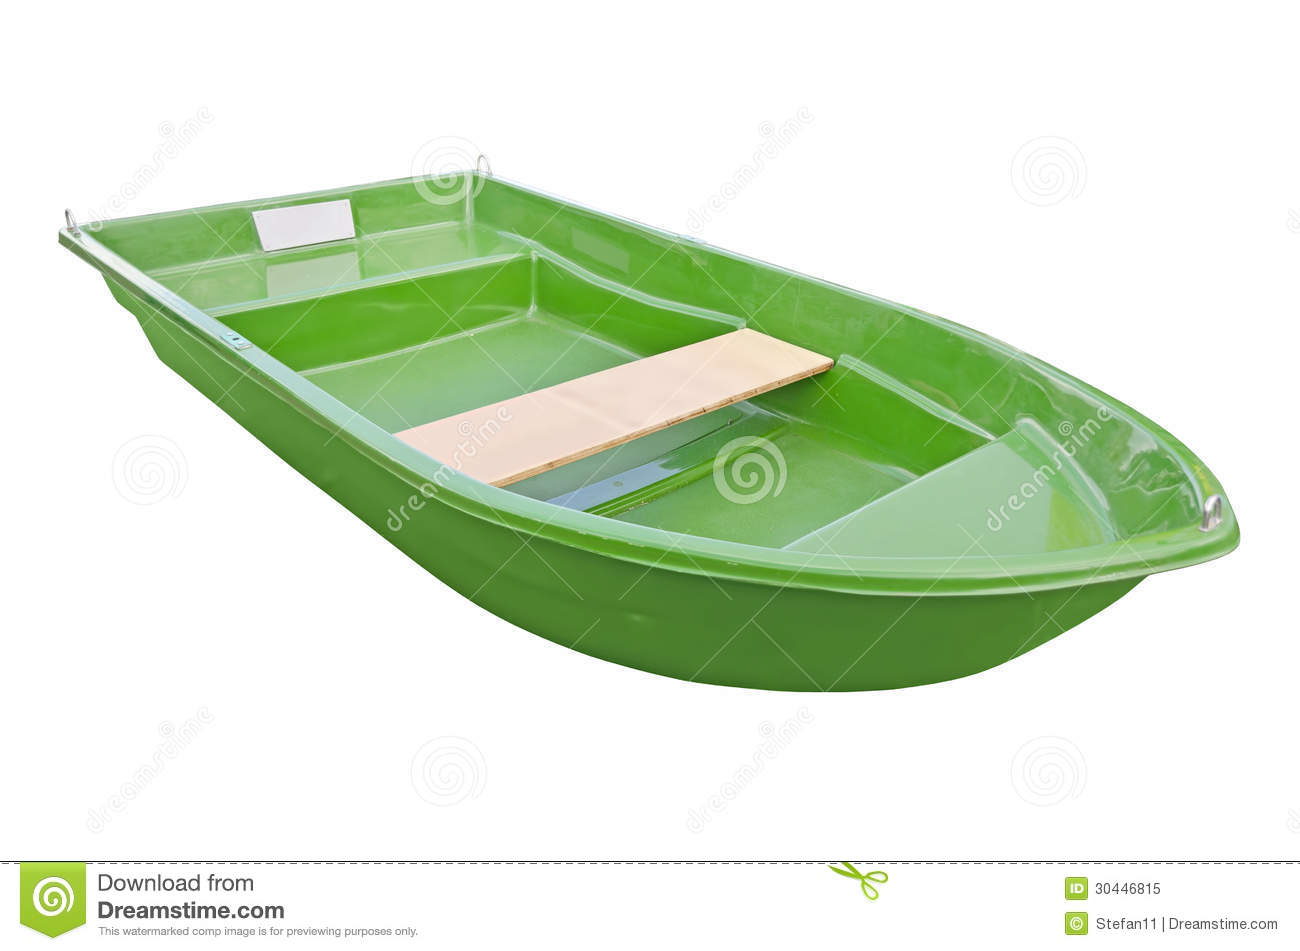 Green boat royalty free stock photo image 30446815 for Green boat and motor